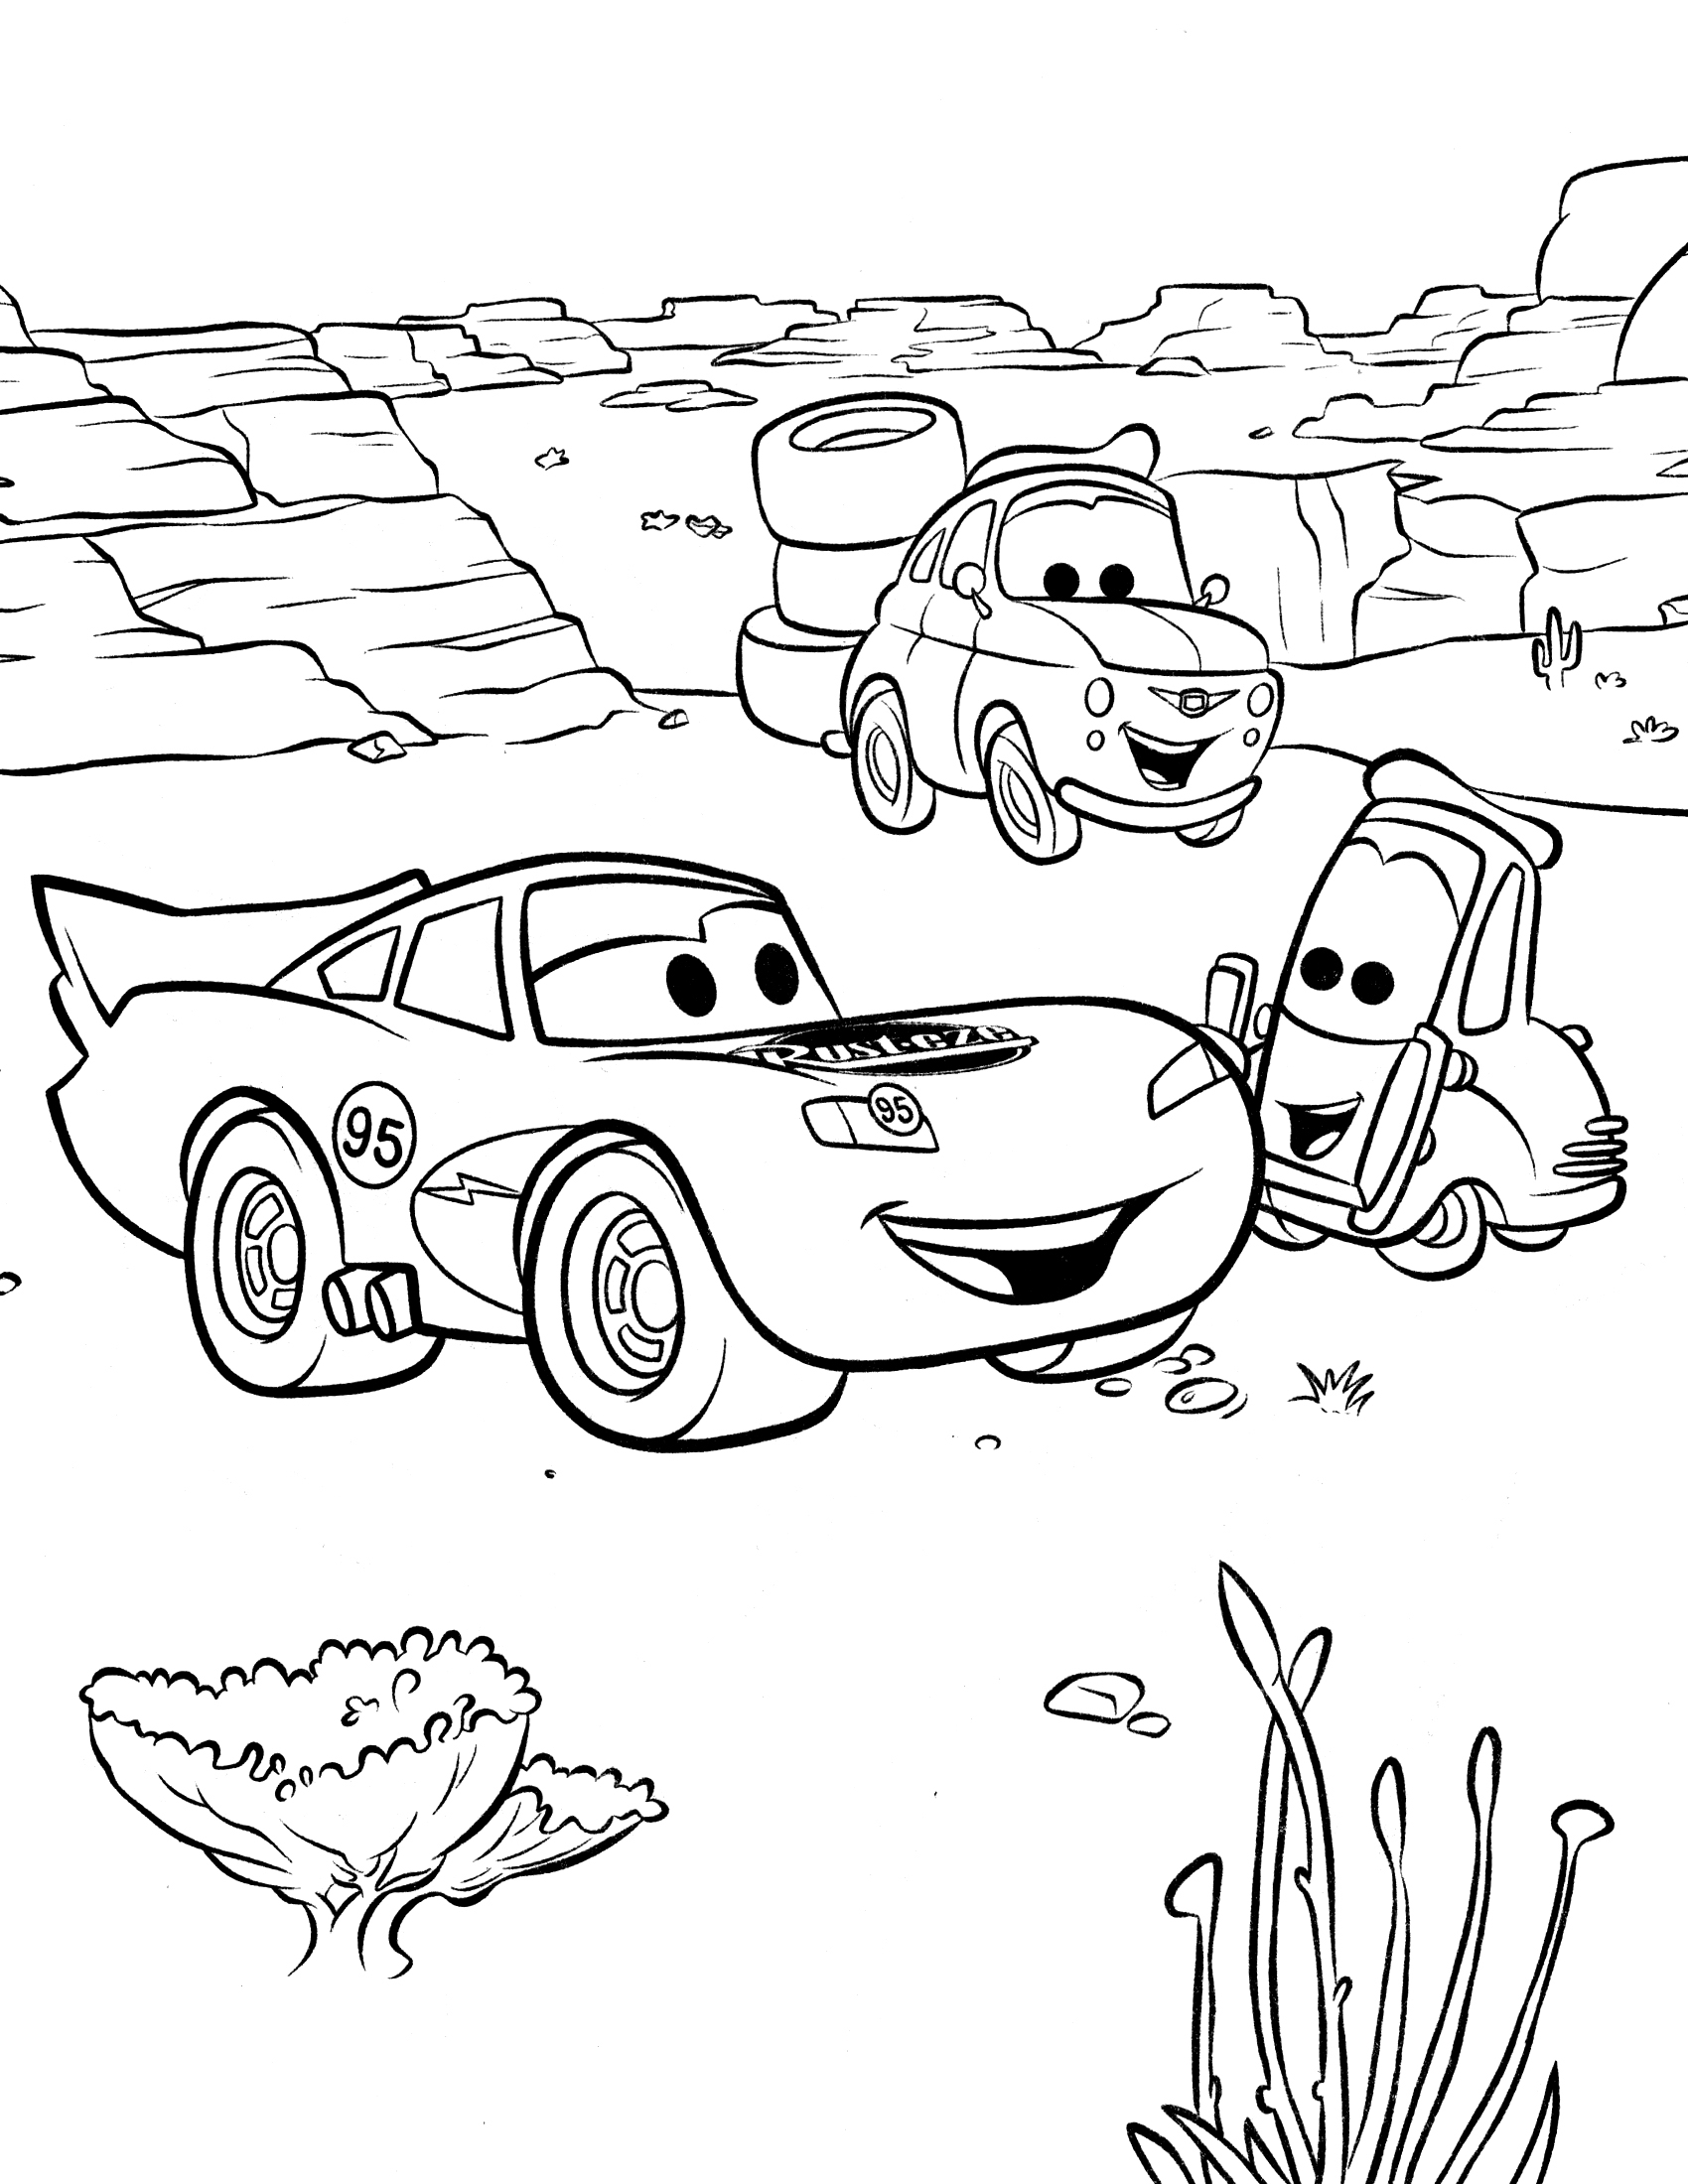 cars movie colouring pages cars the movie coloring pages to print free coloring sheets pages colouring cars movie